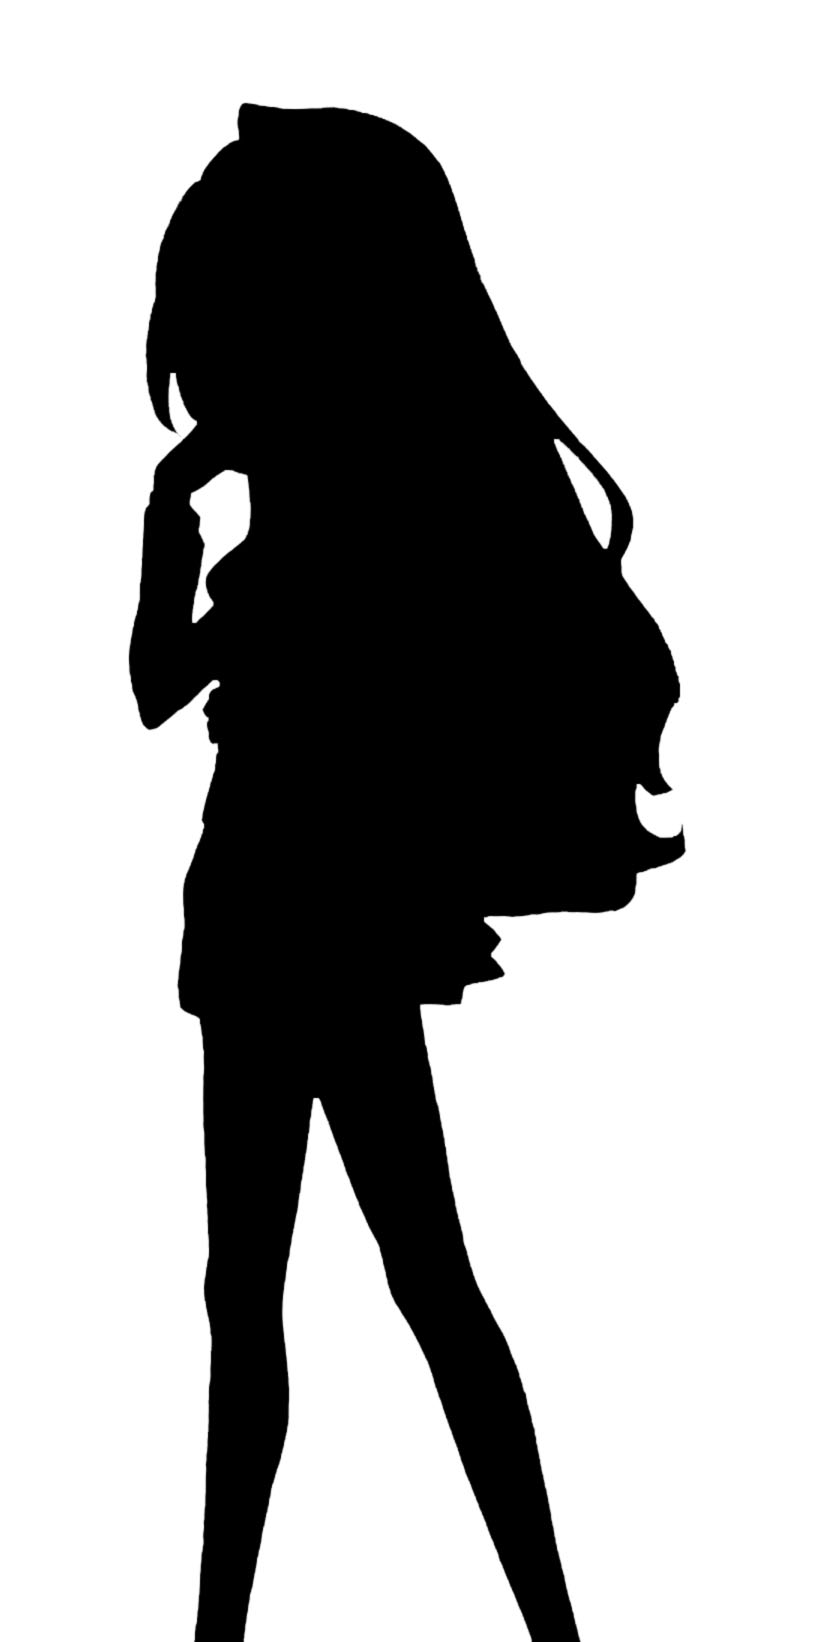 820x1642 Guess The Silhouette Anime